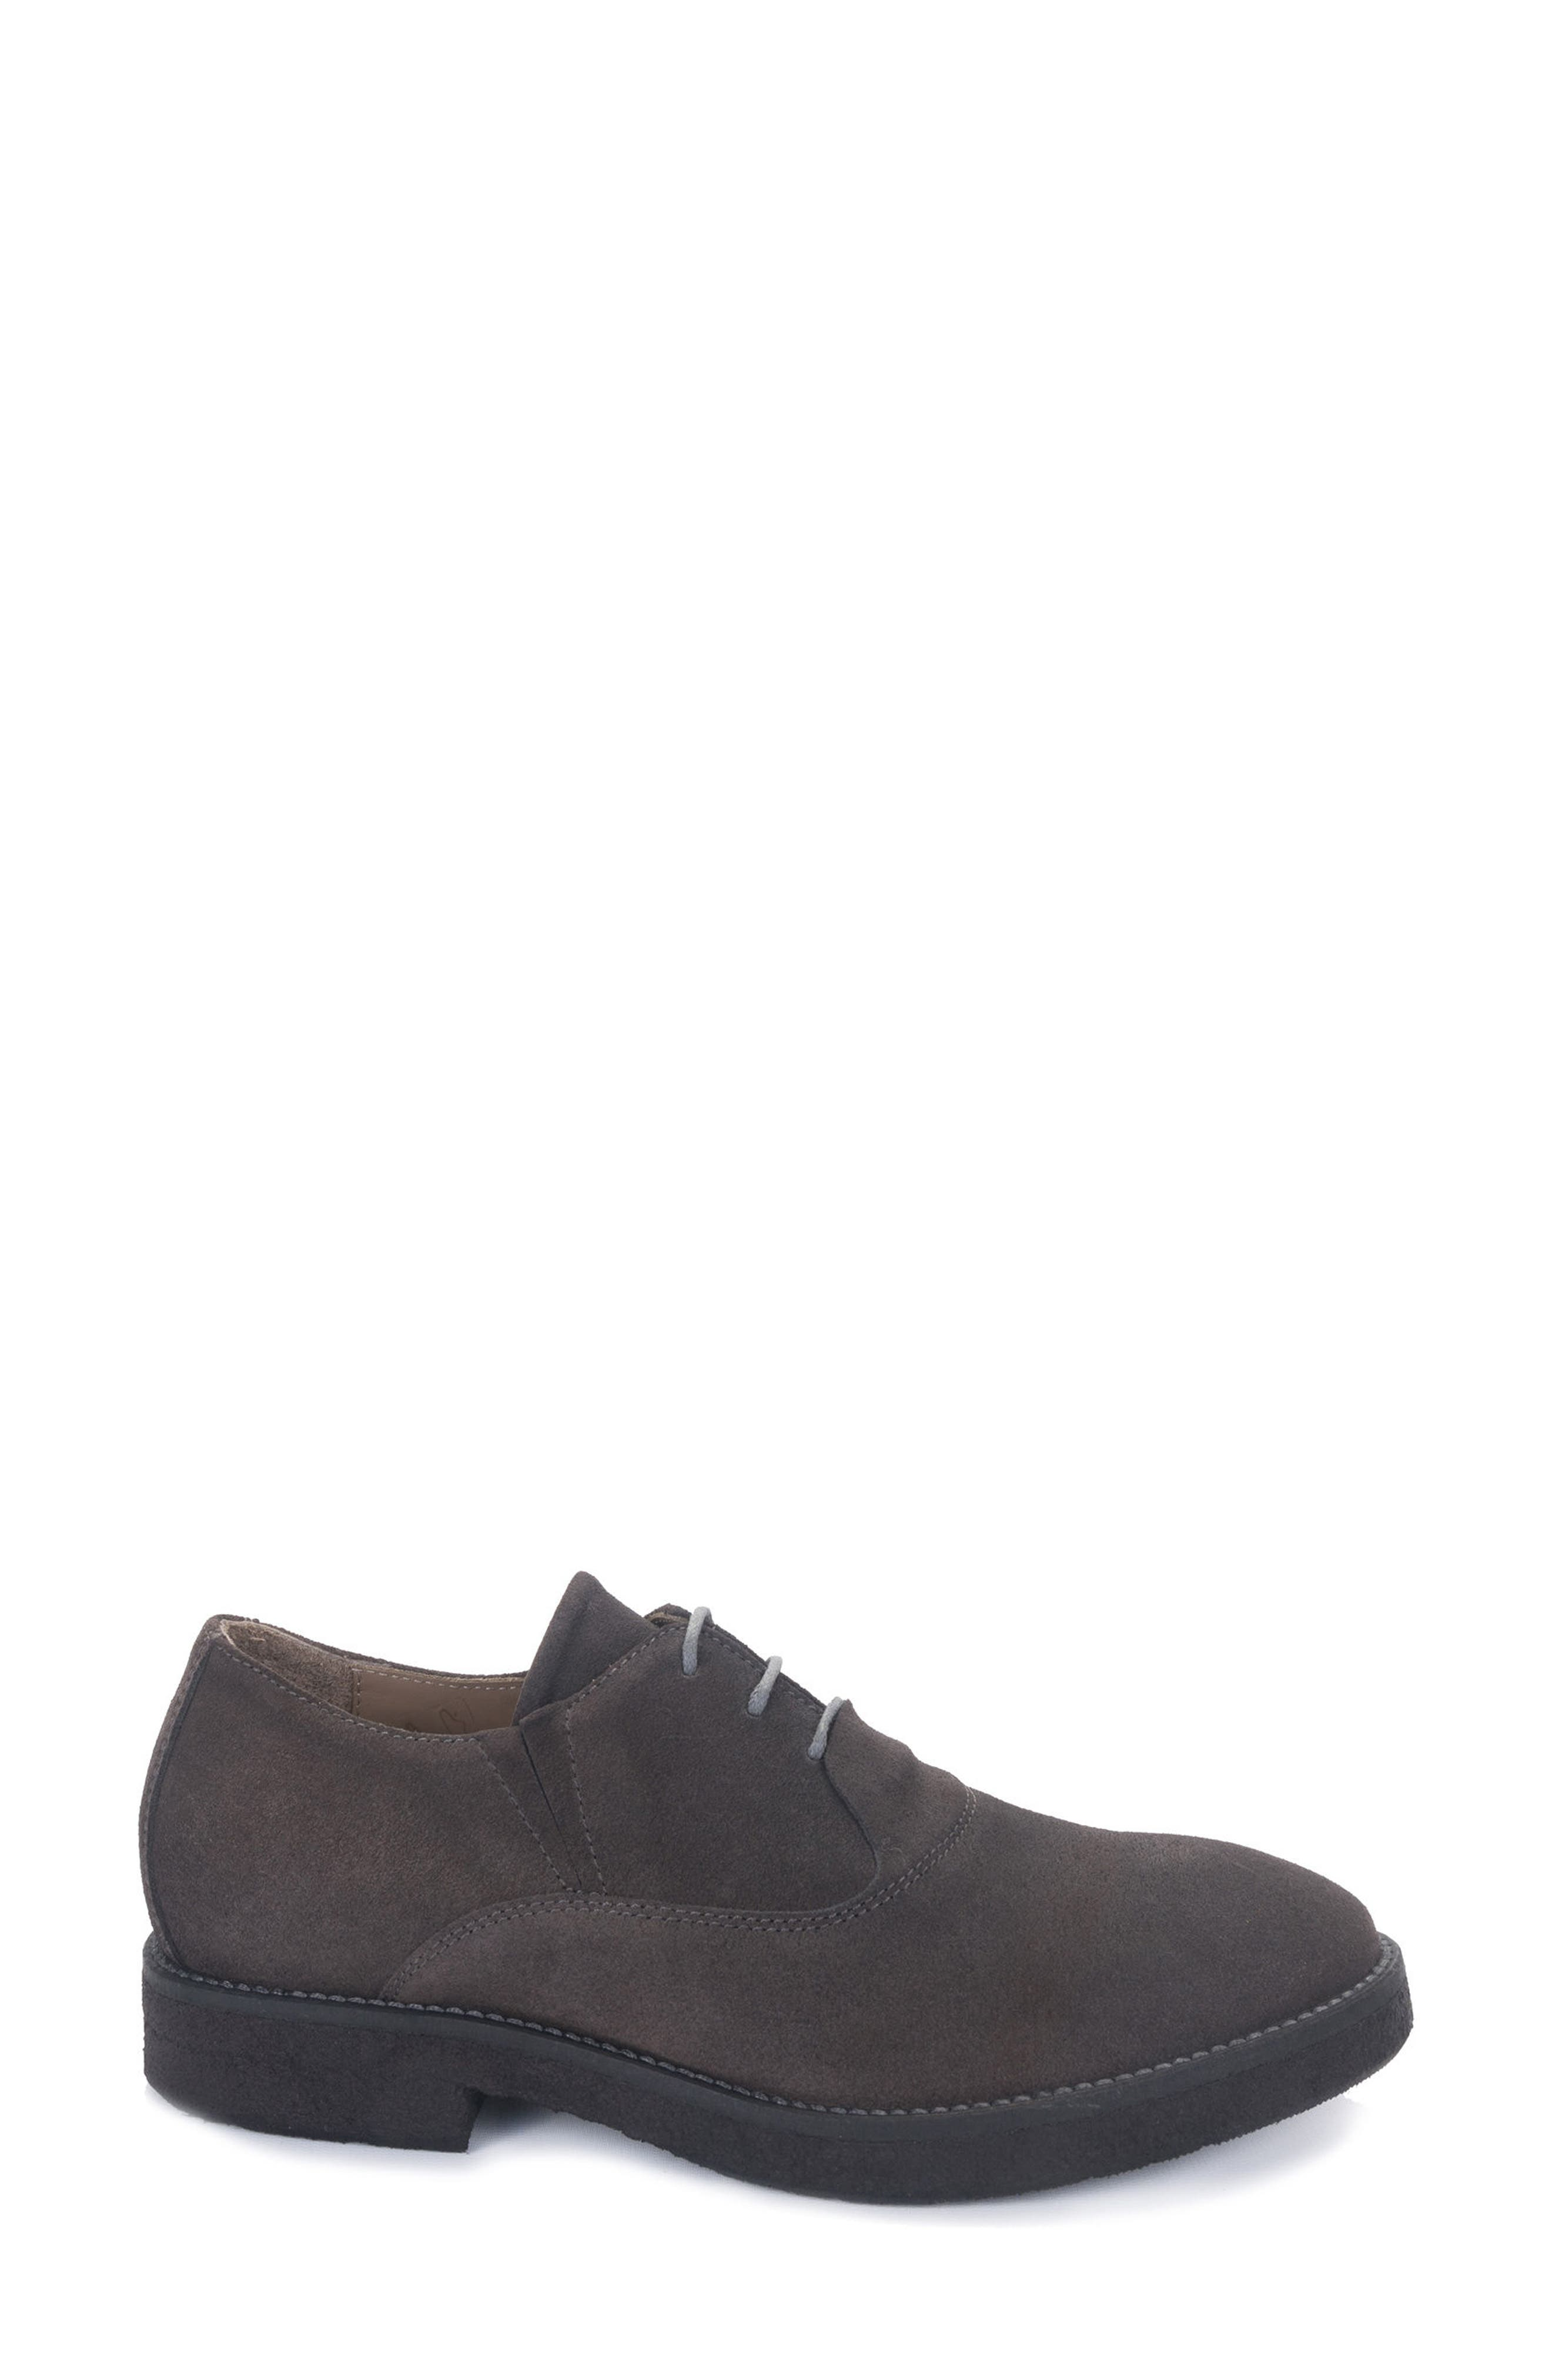 Molinella Water-Resistant Oxford,                             Alternate thumbnail 3, color,                             002